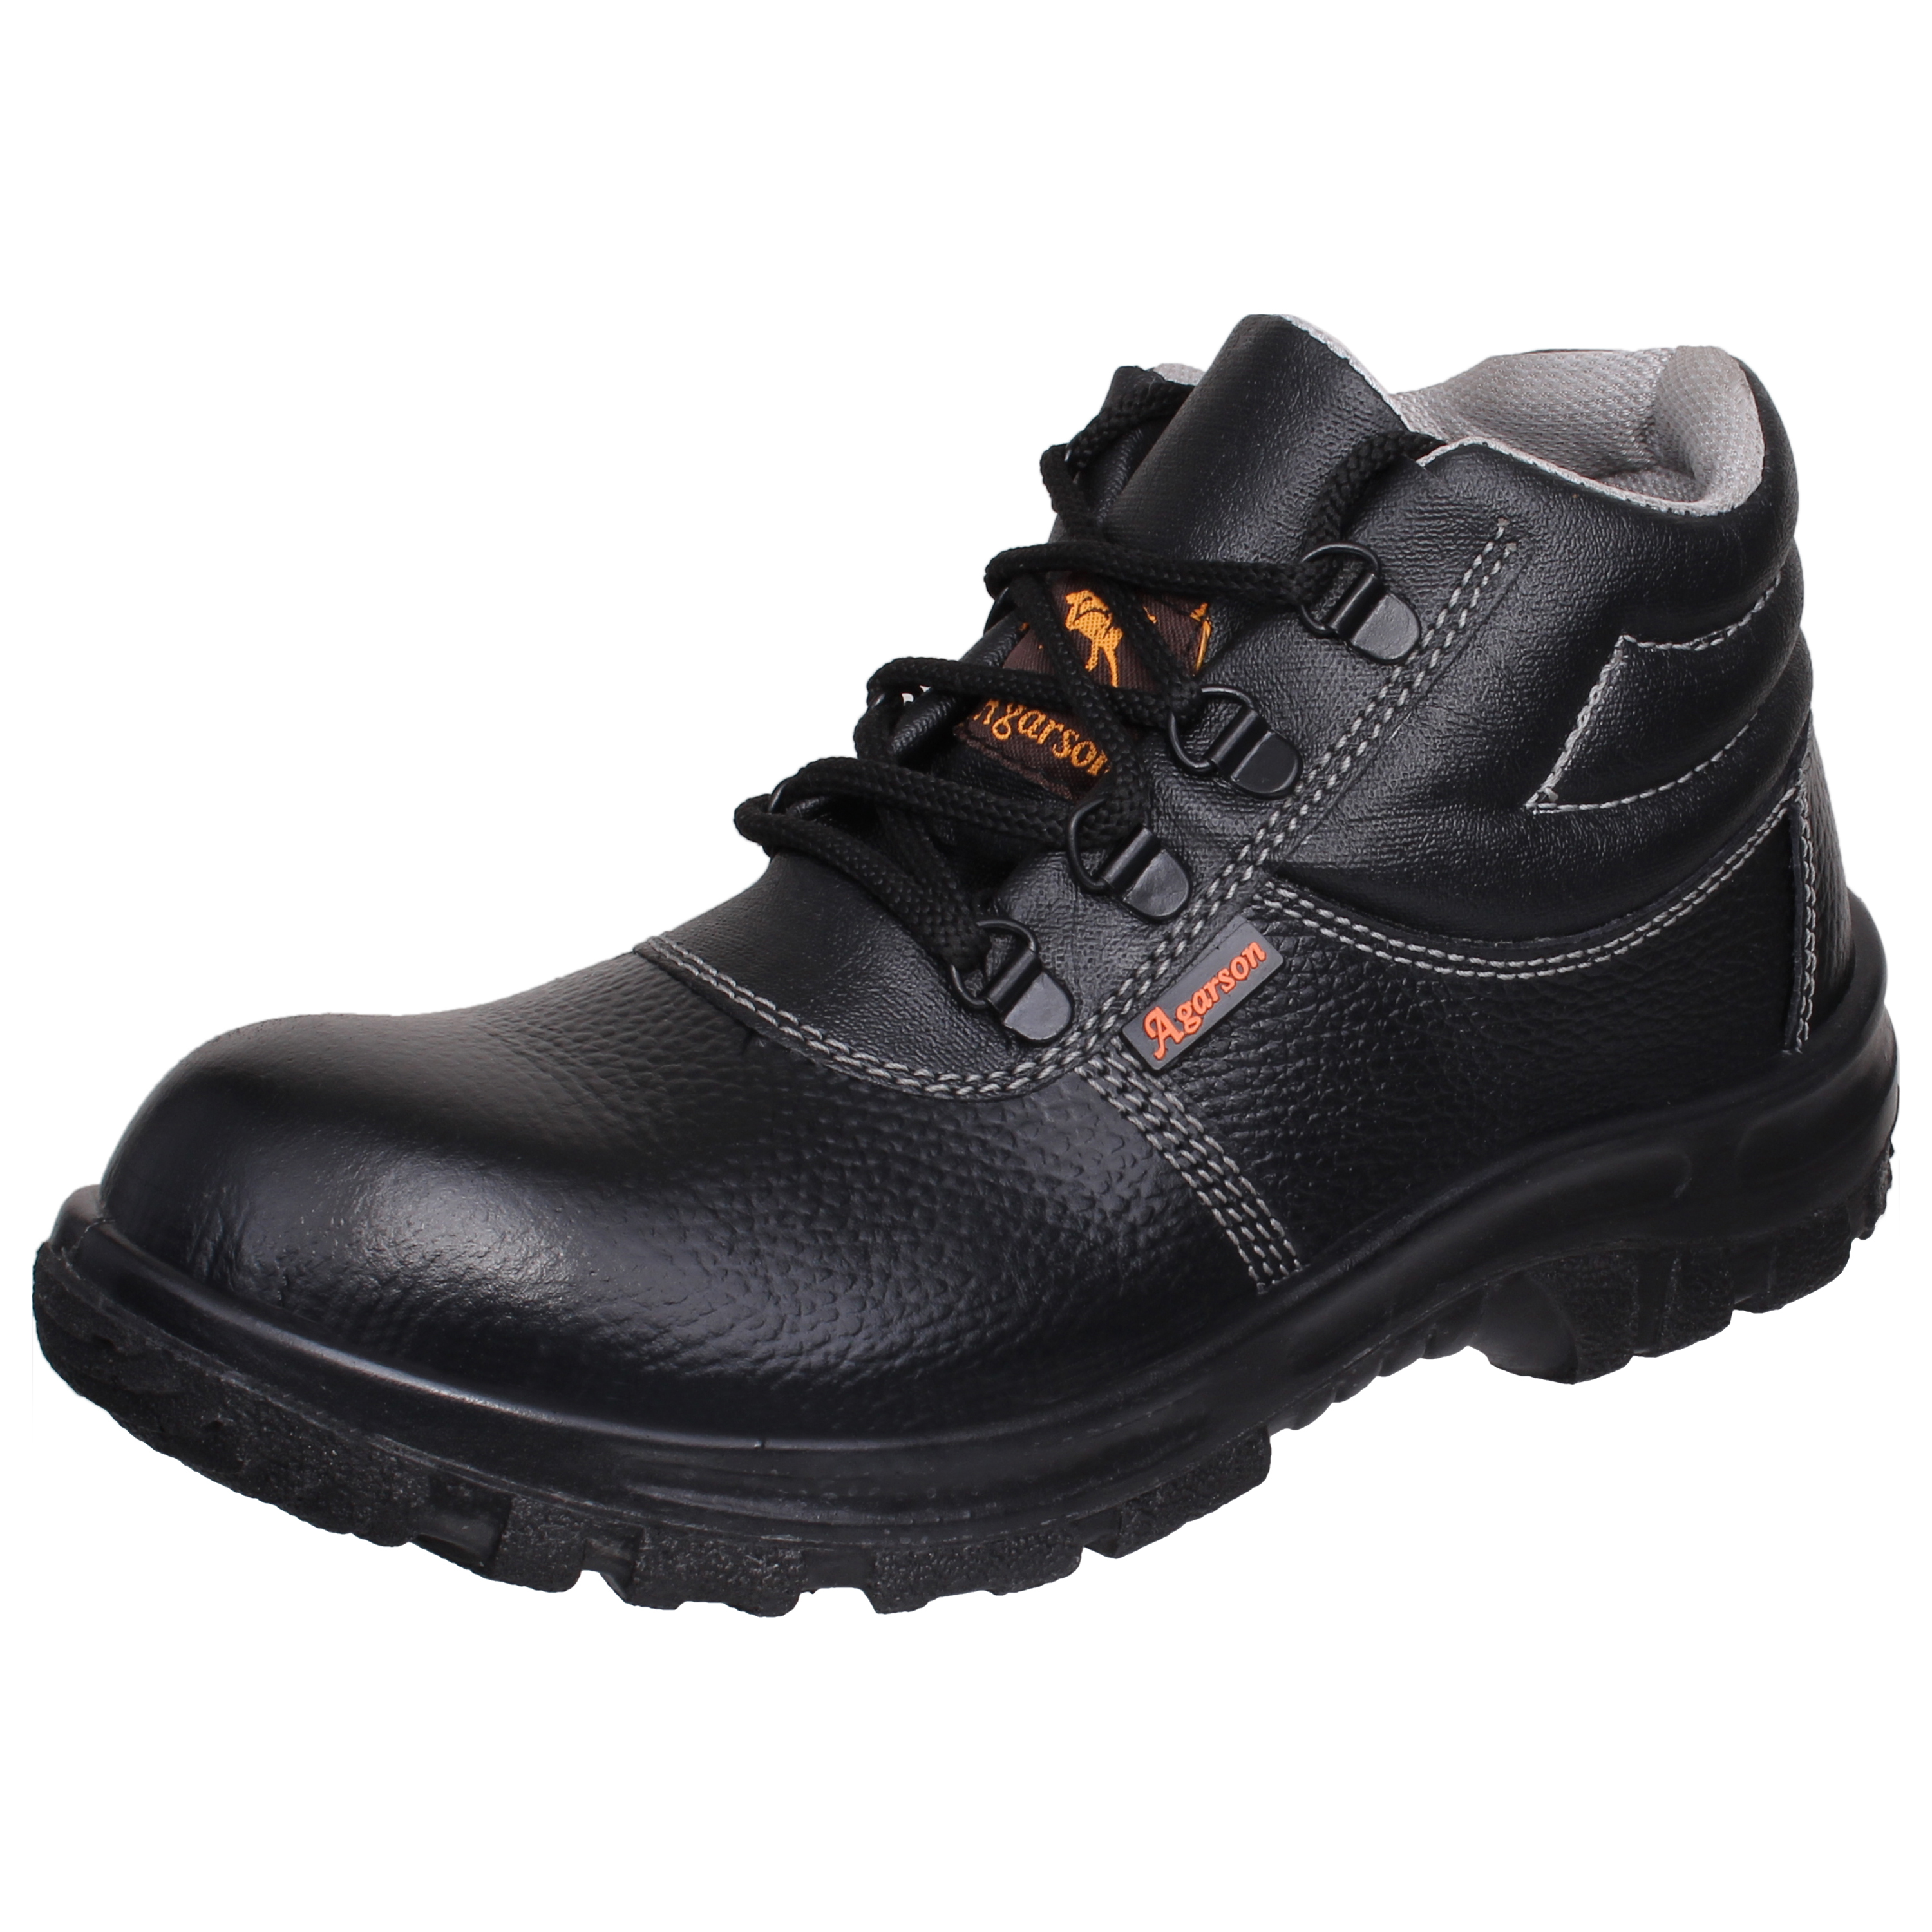 high ankle safety shoes